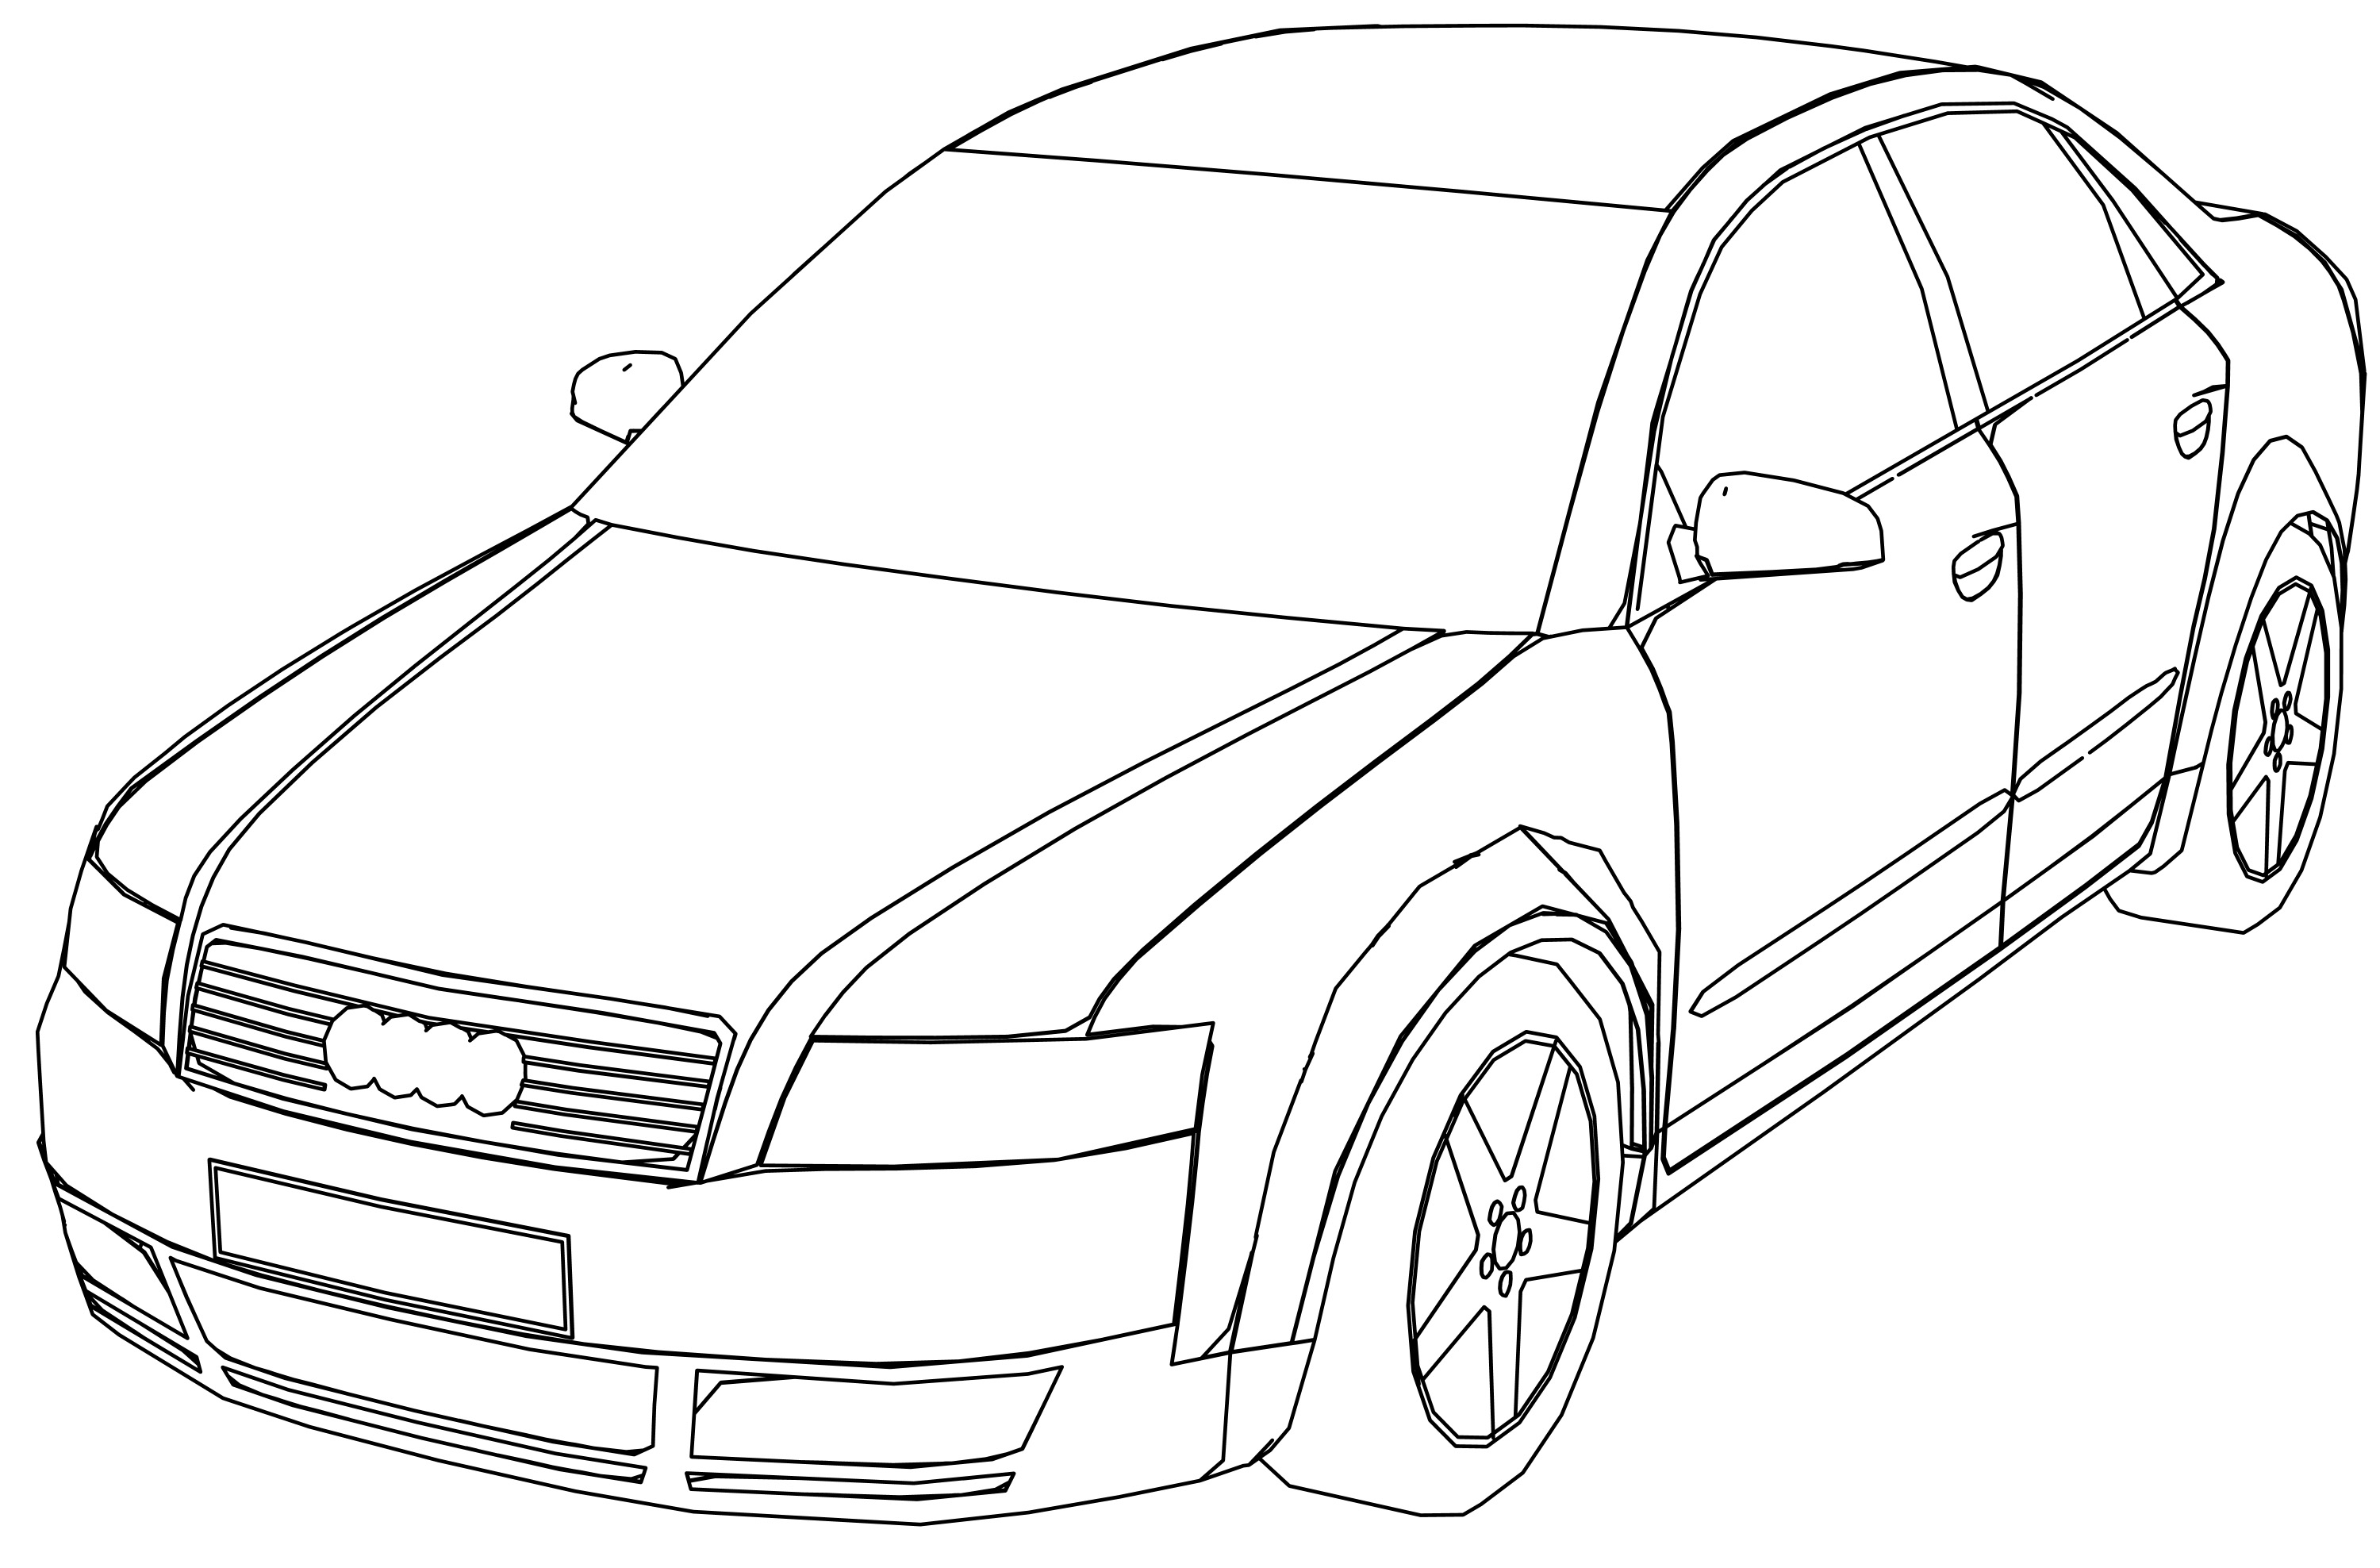 Audi a4 perspective coloring page for Audi r8 coloring pages